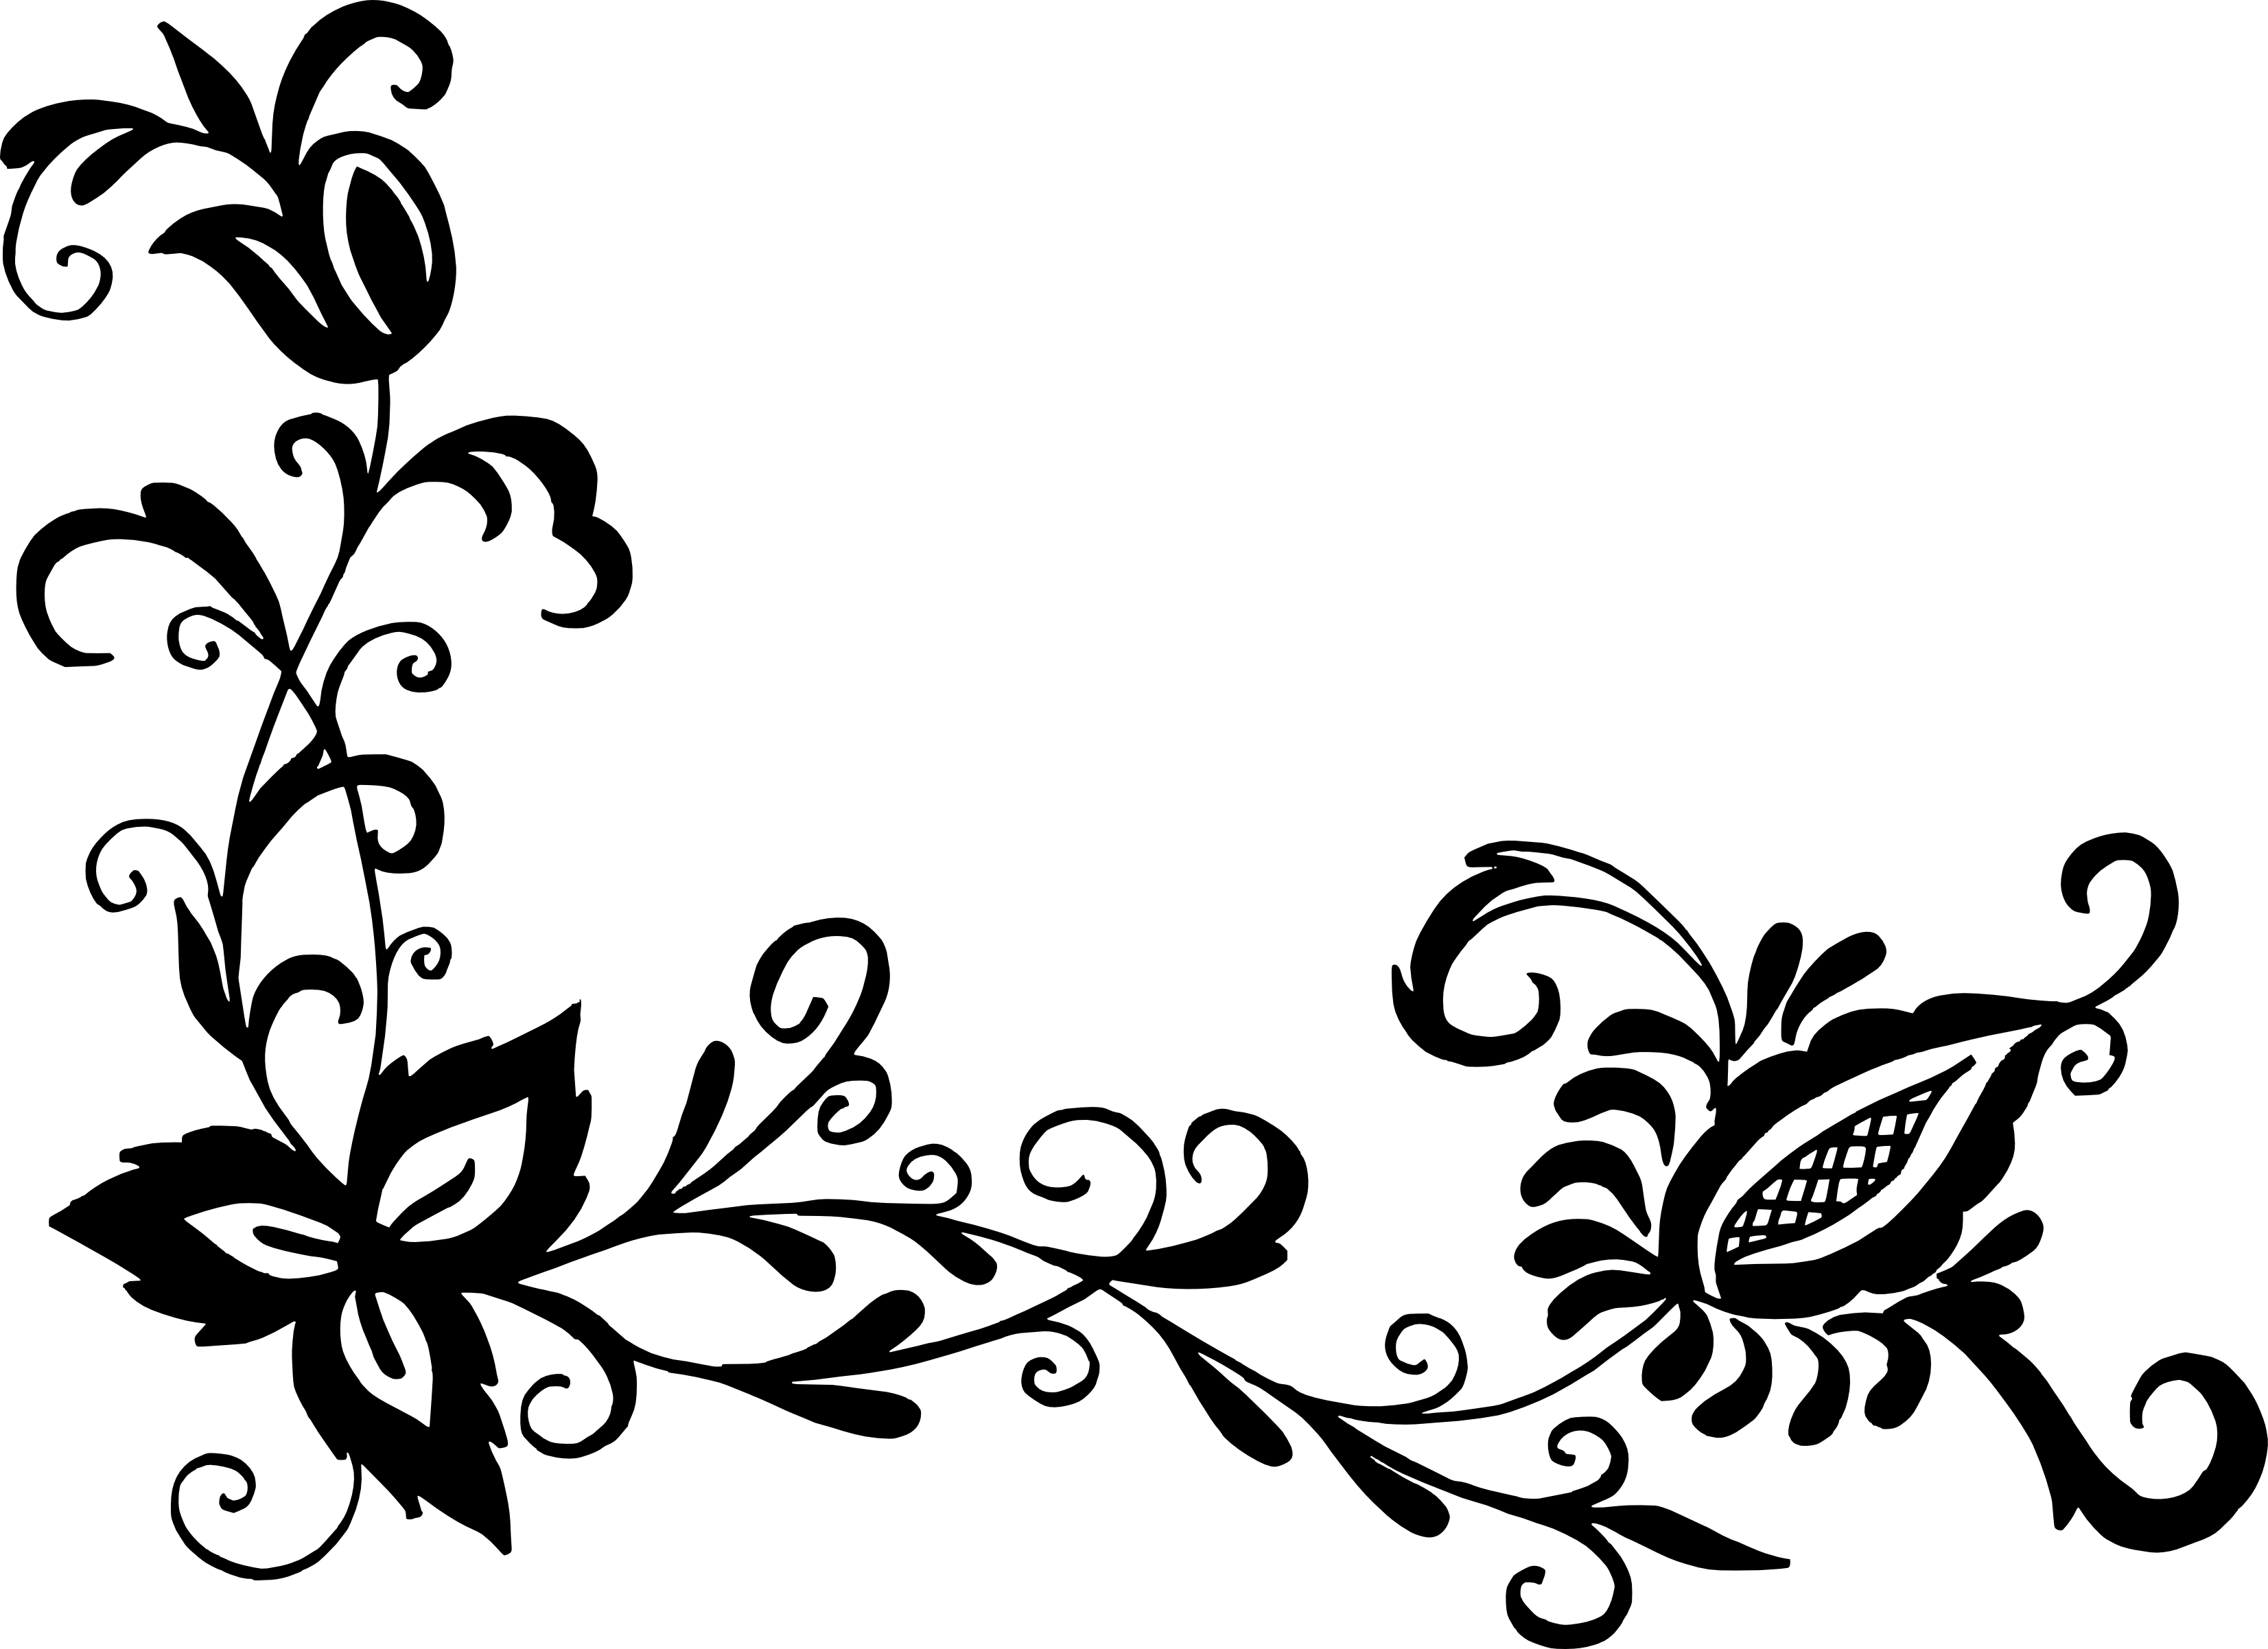 Flower pattern png. Floral transparent corner vector